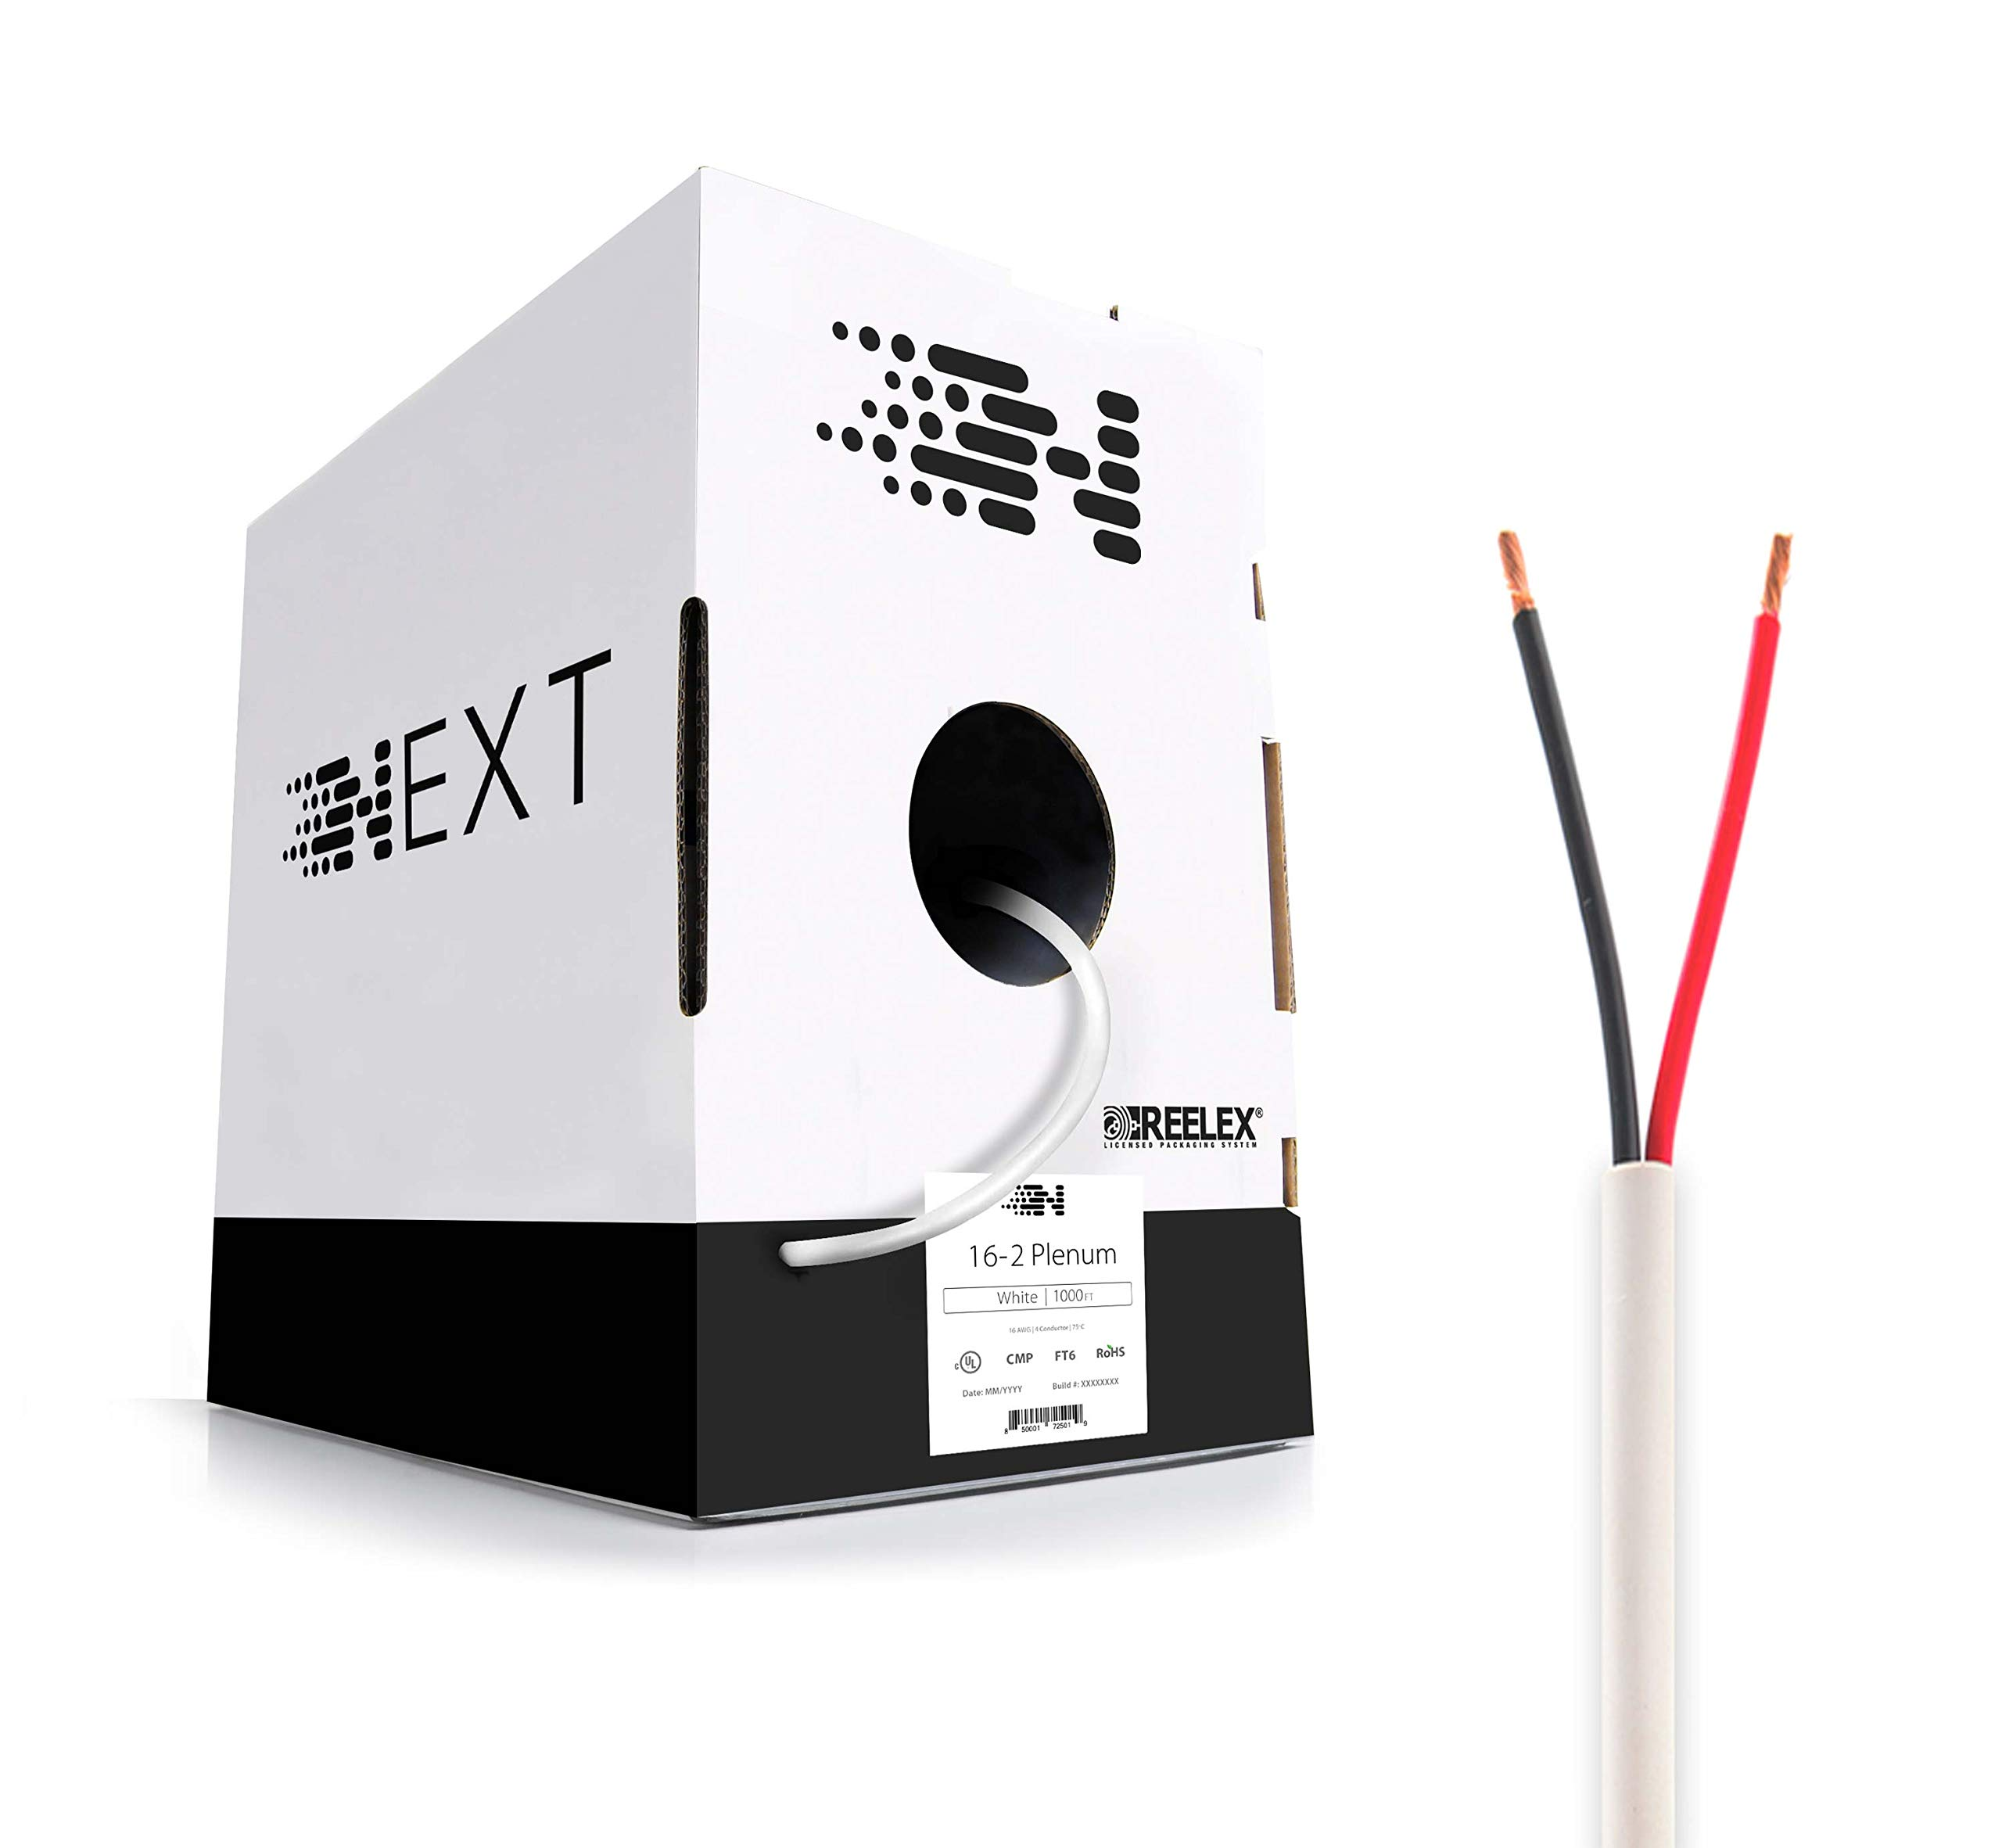 Next 16/2 Plenum Speaker Wire - 16 AWG/Gauge 2 Conductor - UL Listed in Wall (CL2P/CL3P/CMP) Rated - Oxygen-Free Copper (OFC) - 1000 Foot Bulk Cable Pull Box - White by Next